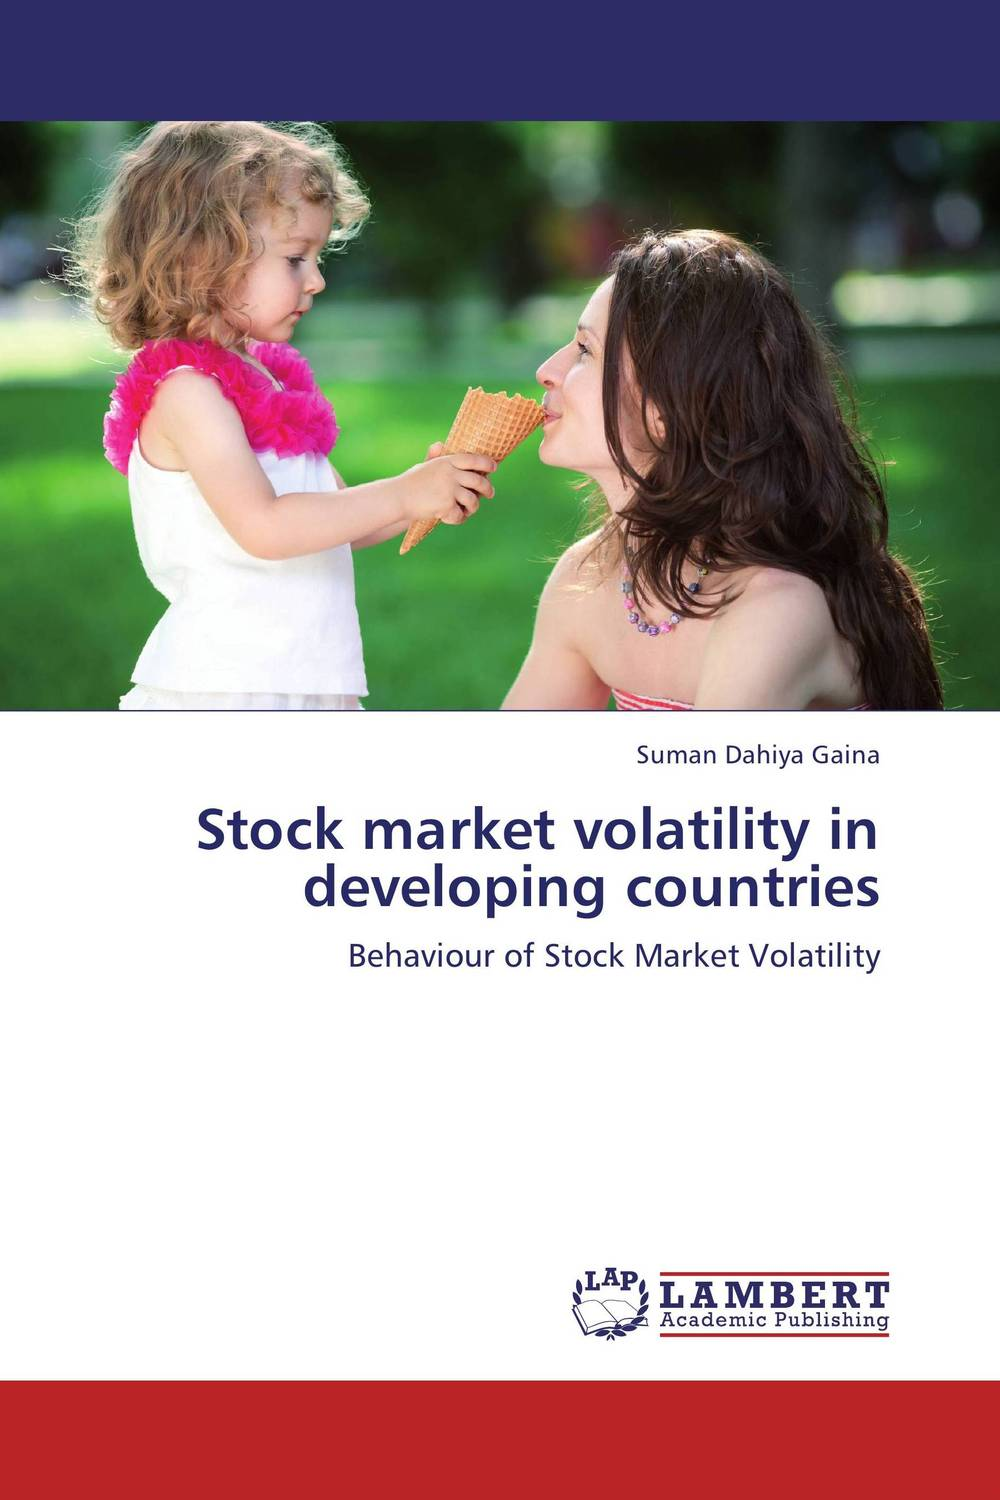 Stock market volatility in developing countries tobias olweny and kenedy omondi the effect of macro economic factors on stock return volatility at nse